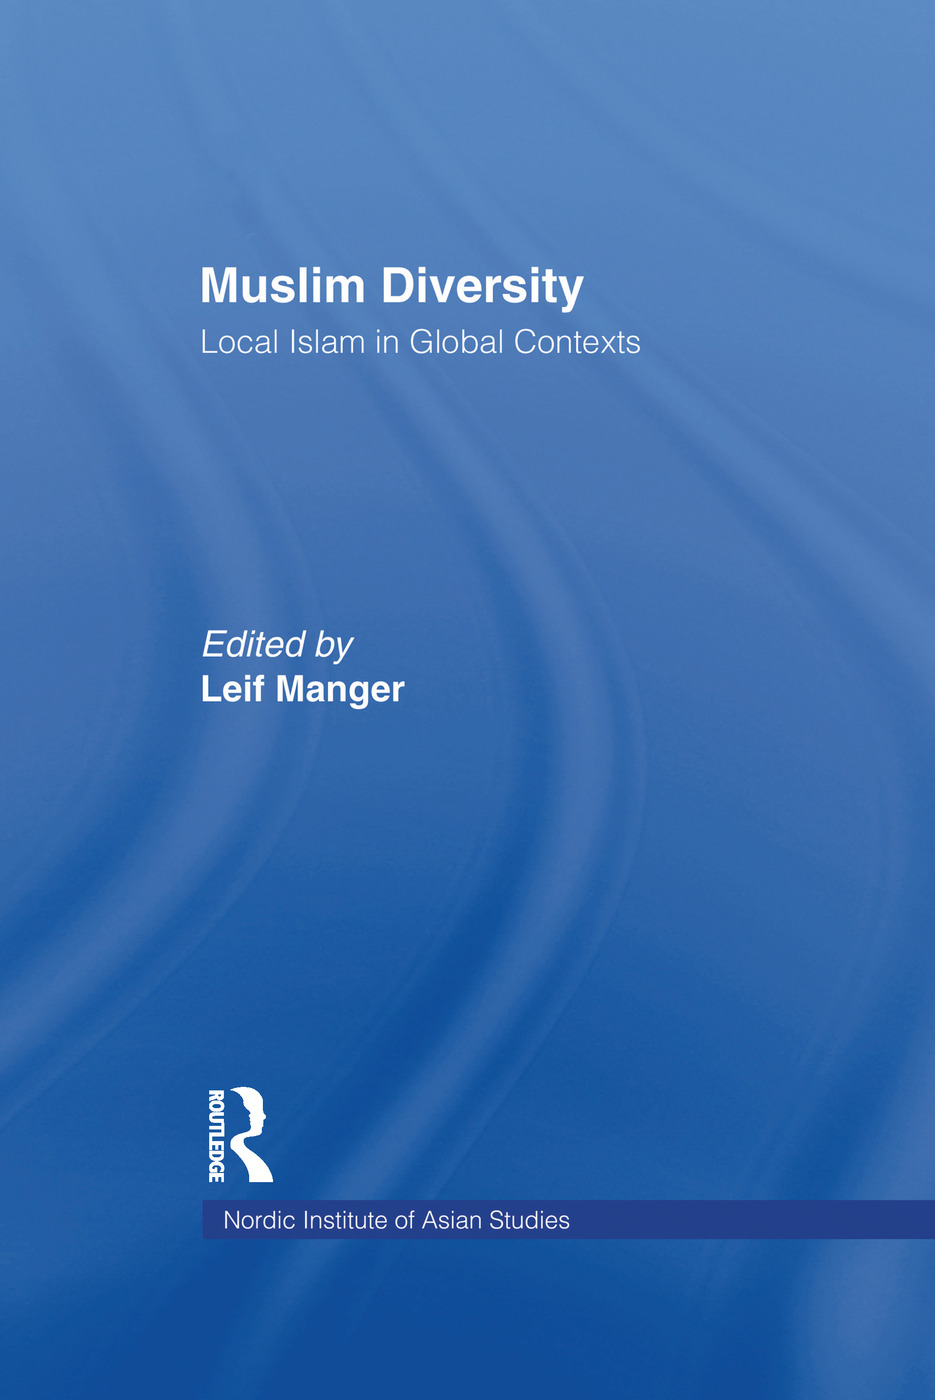 On Becoming Muslim: The Construction of Identities among the Lafofa of the Sudan